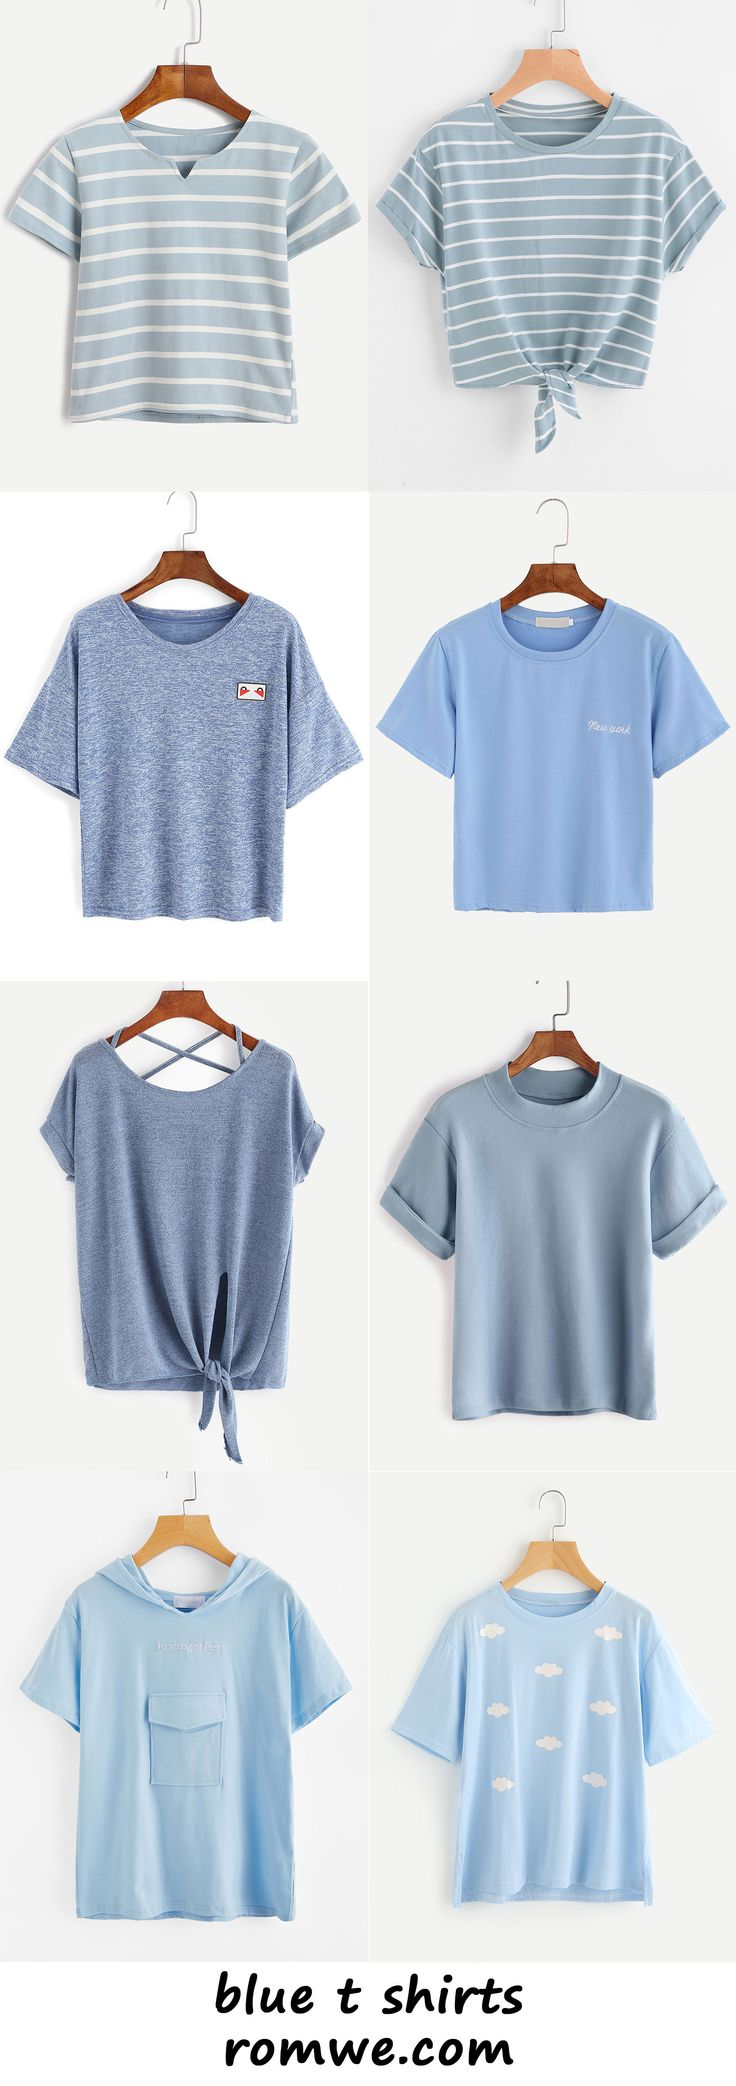 blue t shirts 2017 - romwe.com - here is where you can find that Perfect Gift for Friends and Family Members